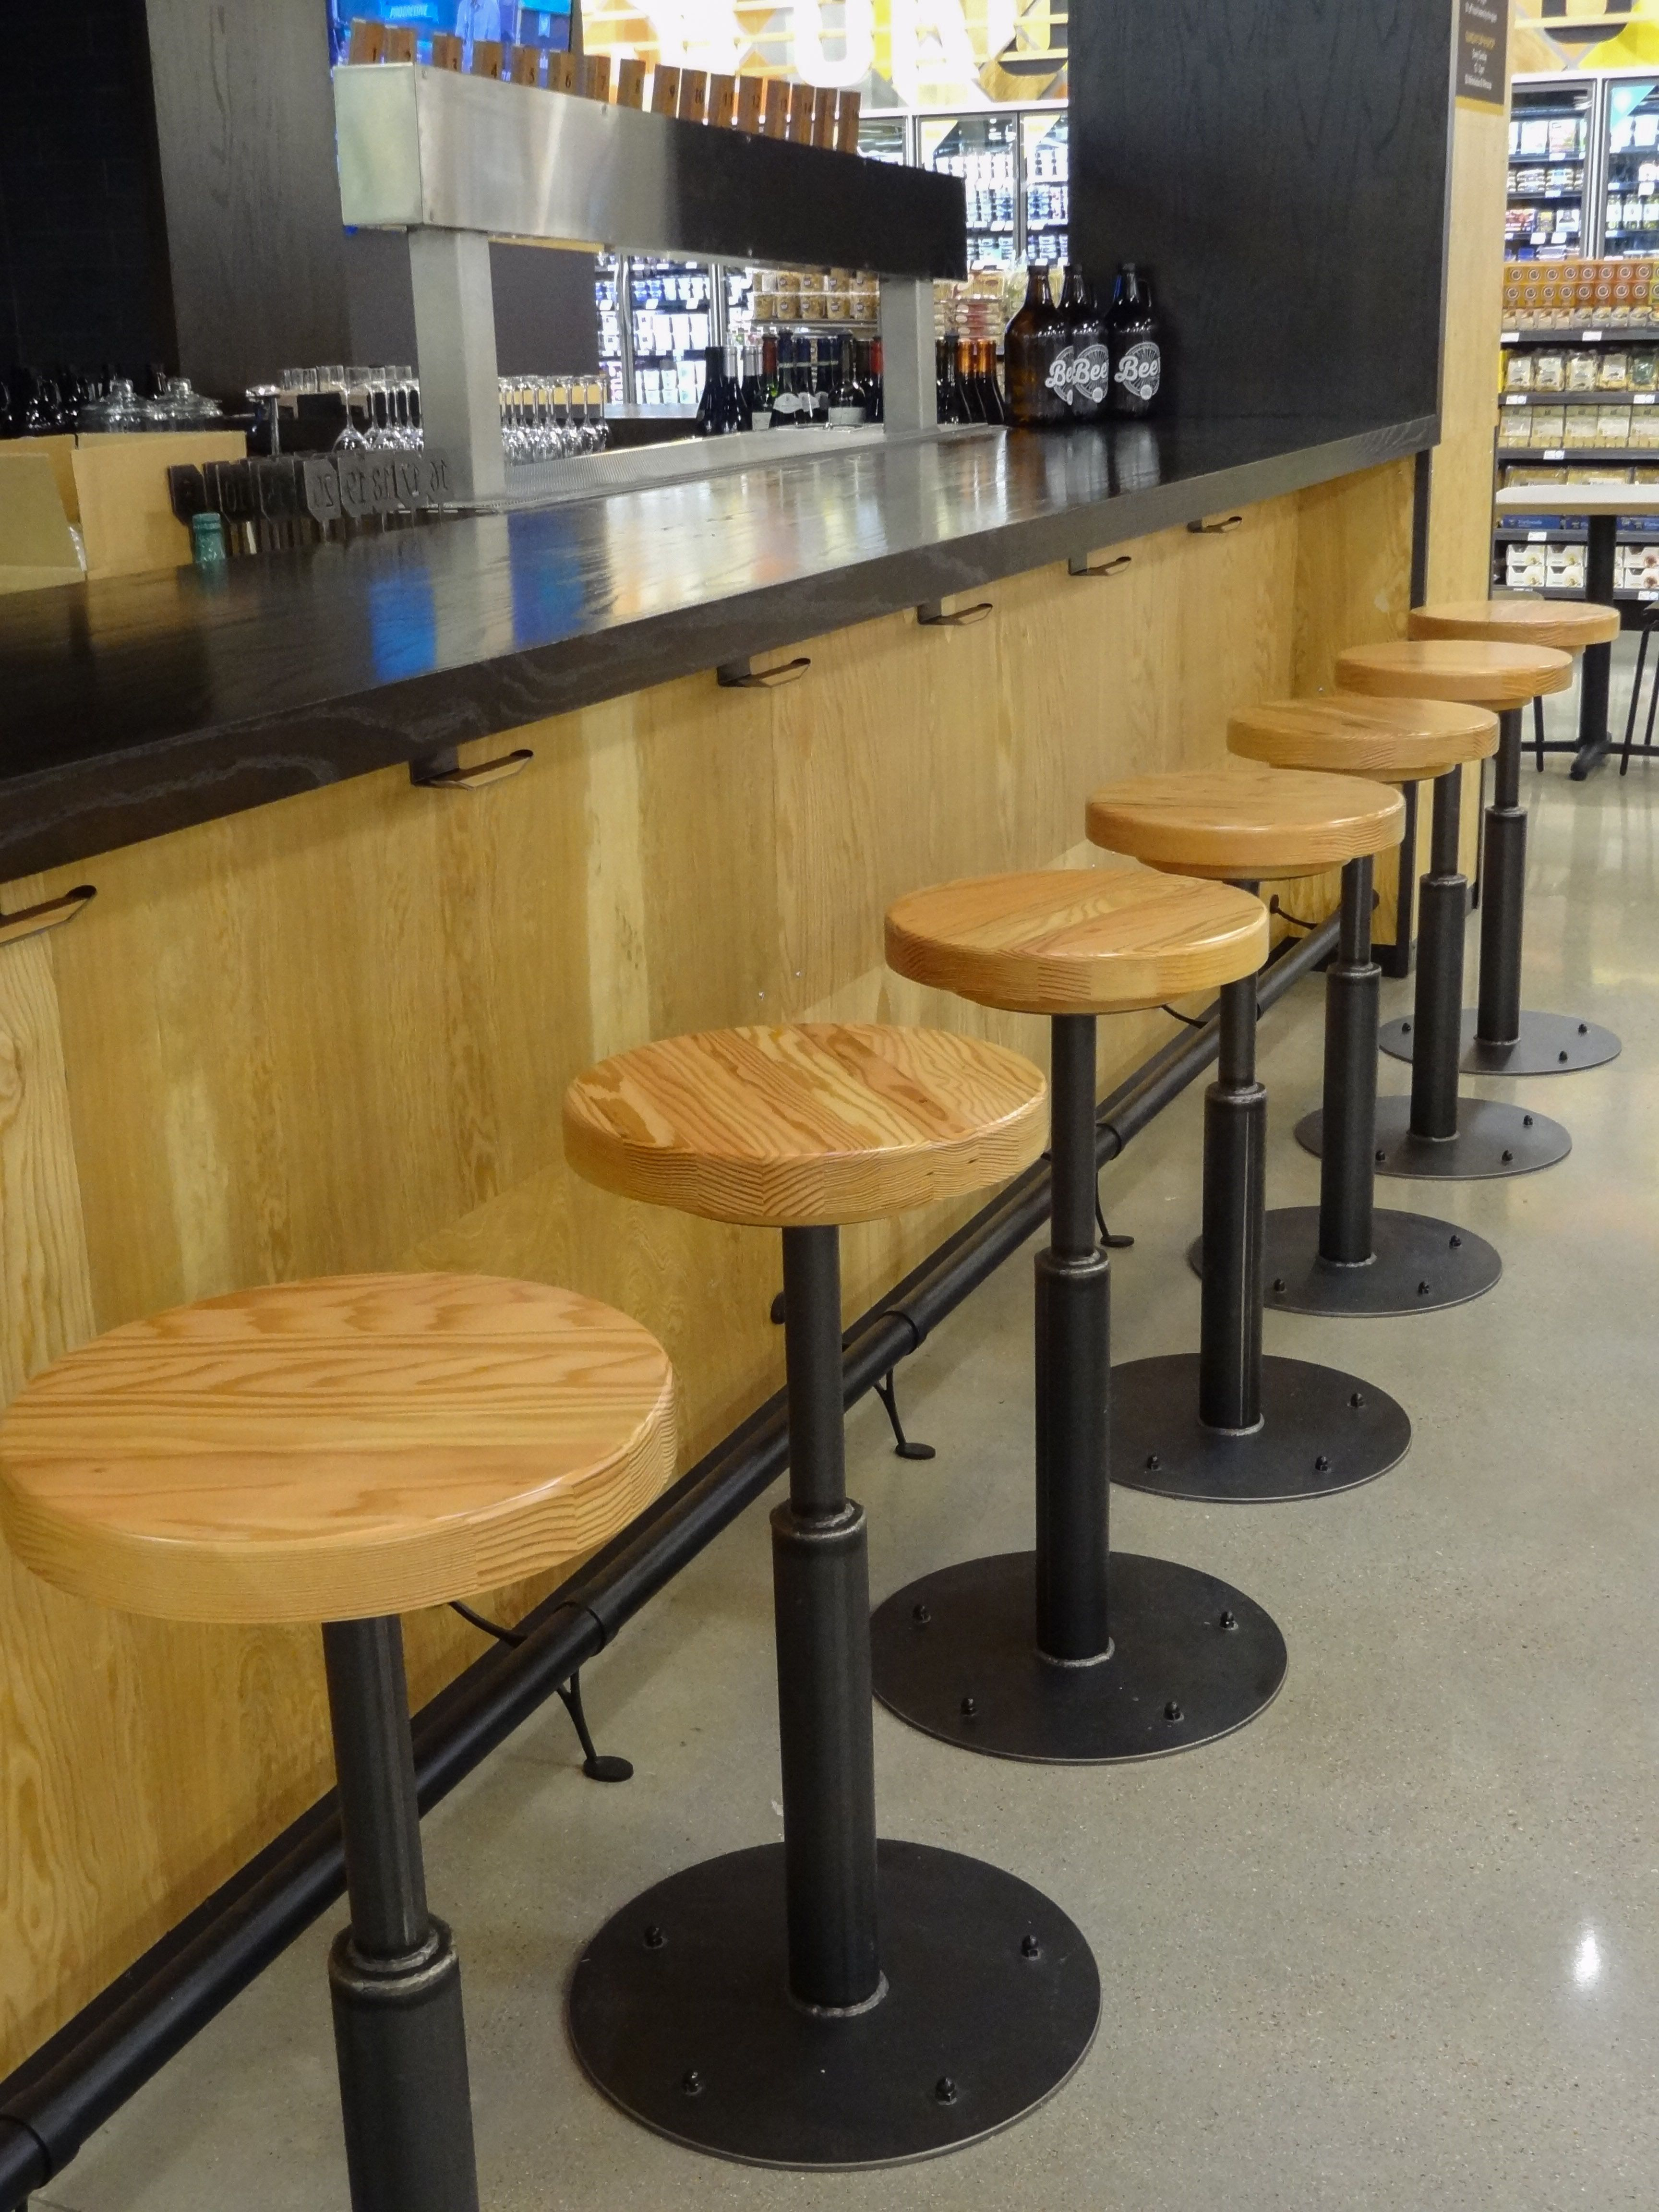 New Store Furniture Design By Thread Collaborative In Irving, Texas. Opened  On September 26